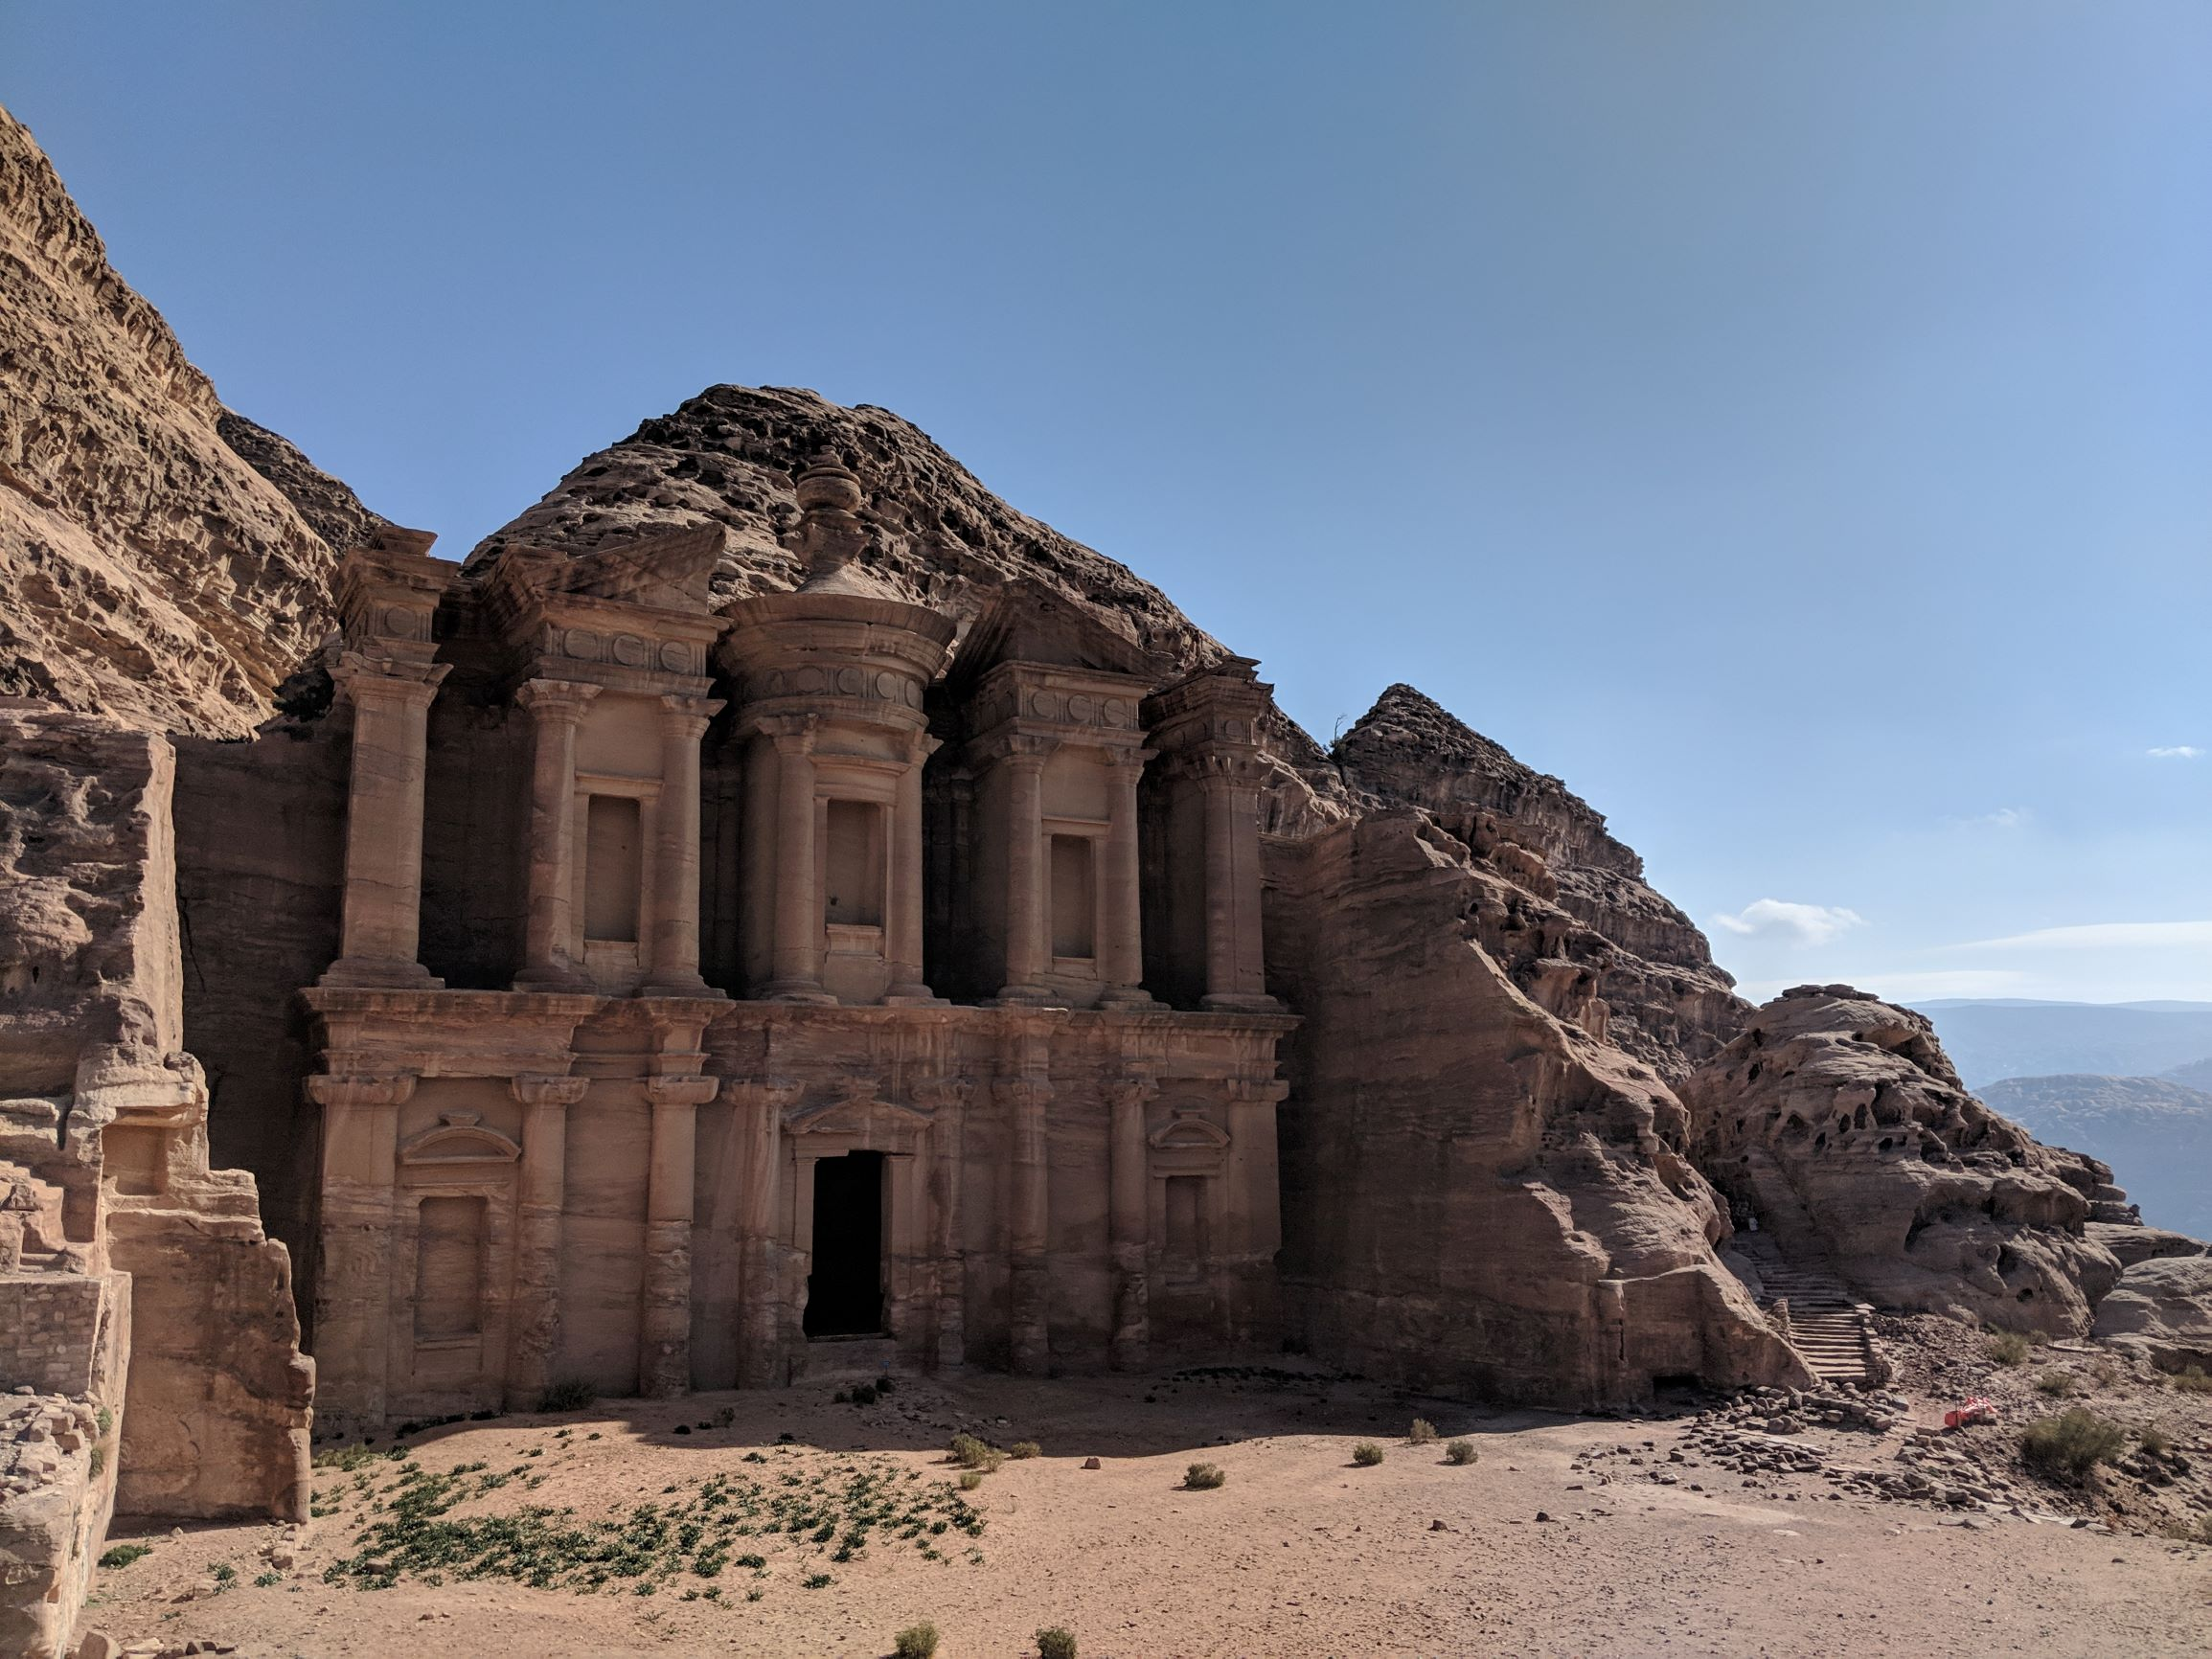 The Monastery of Petra (Al-Dayr).